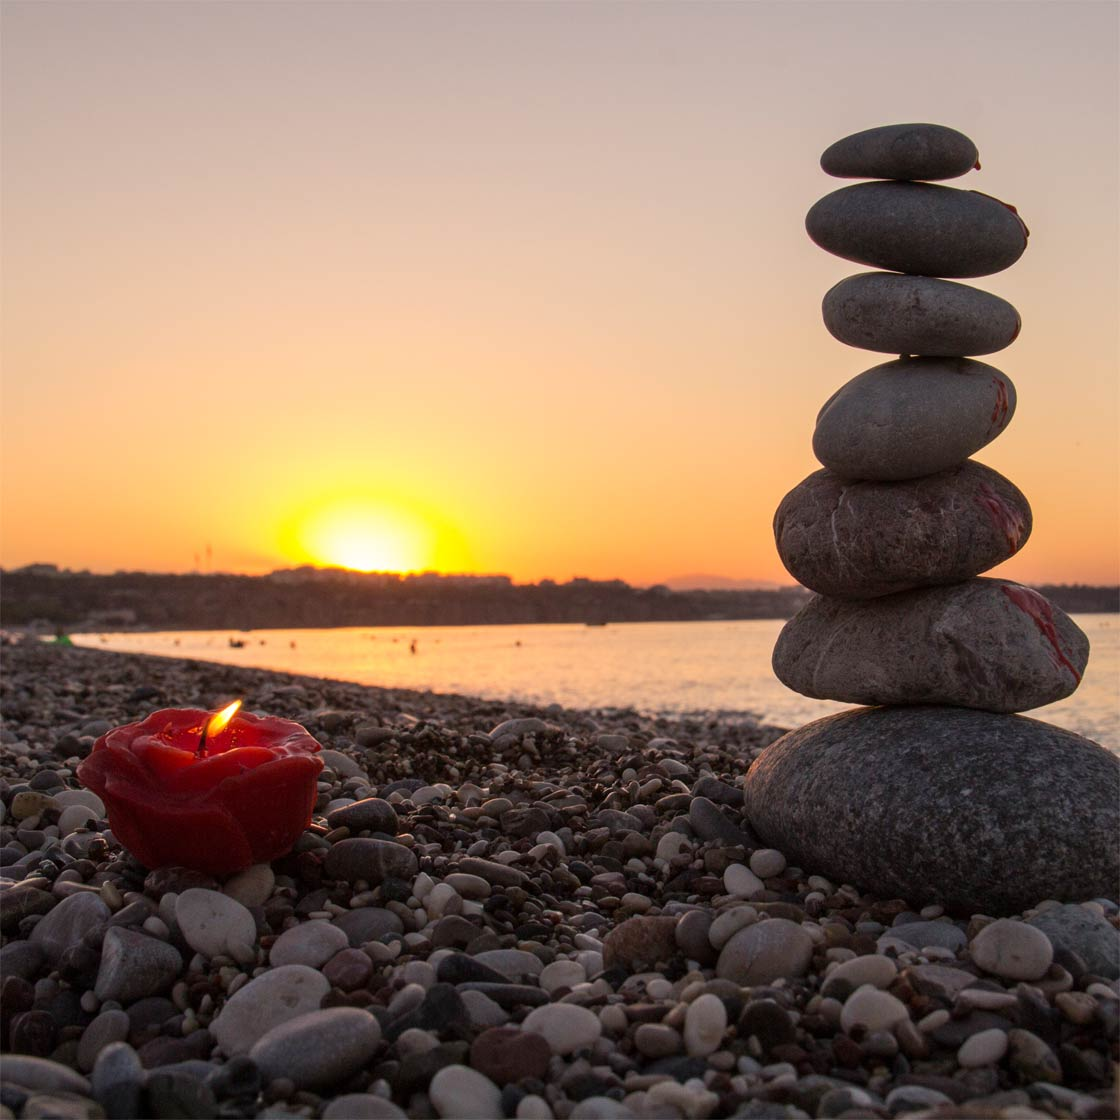 Standing stones with candle on beach